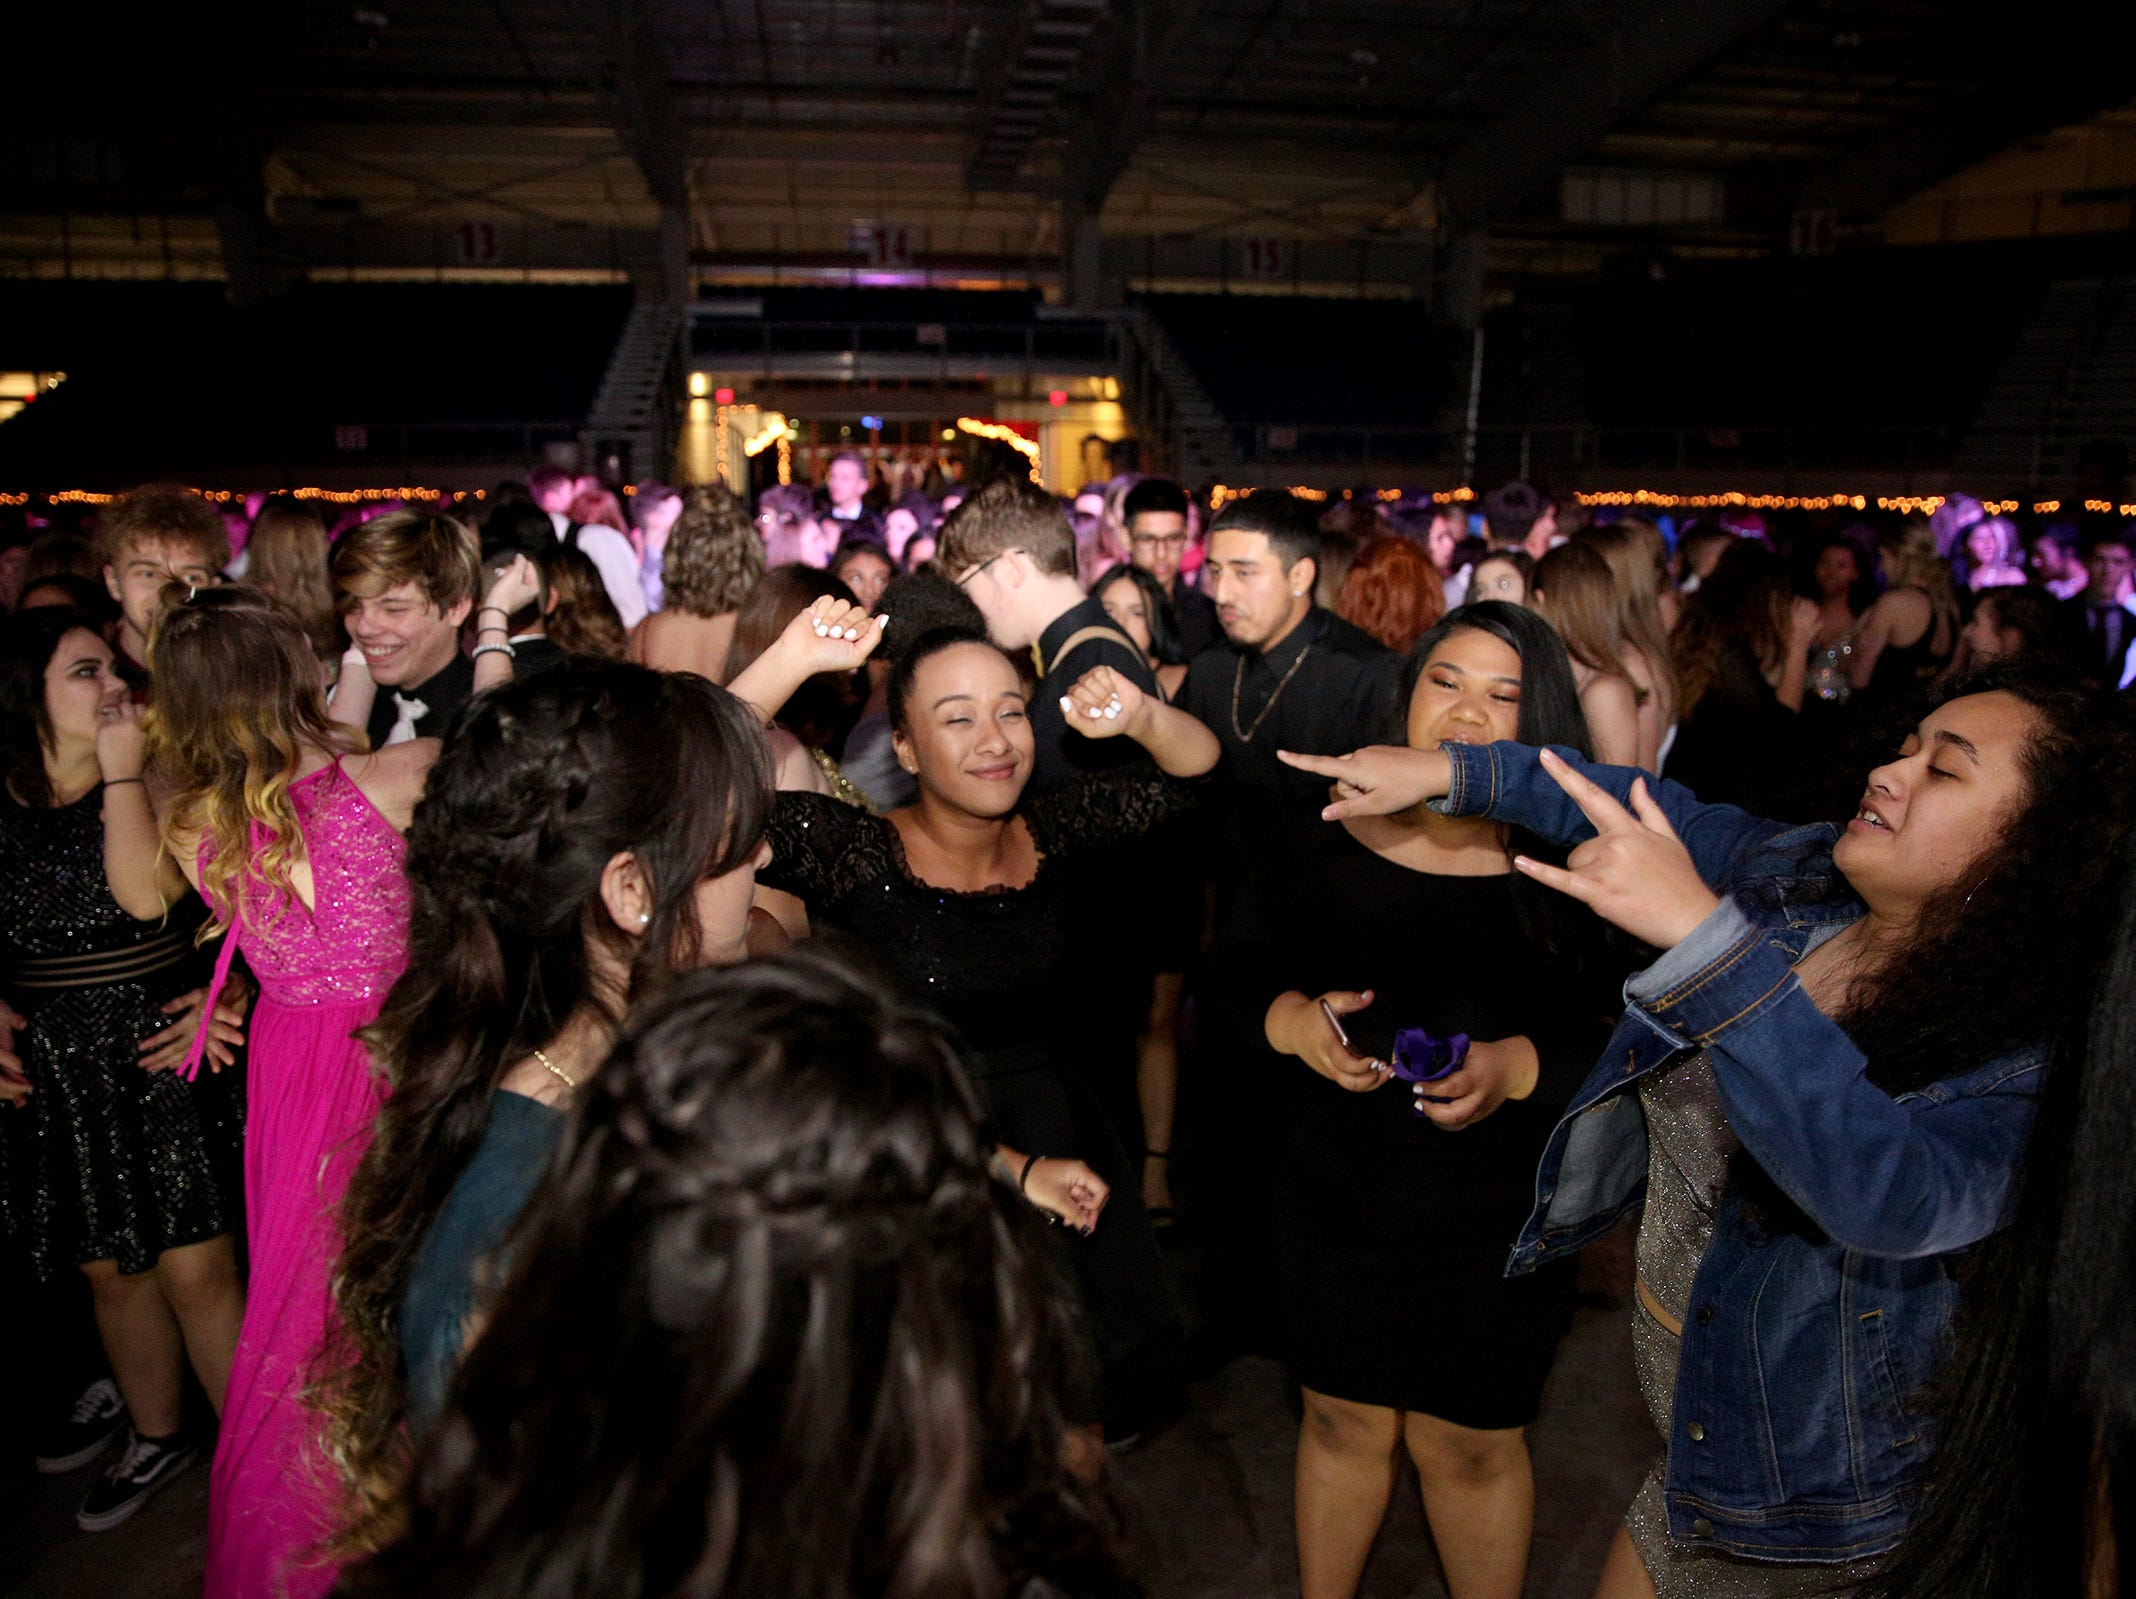 Students from local high schools dance during the annual SnoBall at the Oregon State Fairgrounds Pavilion in Salem on Saturday, Dec. 1, 2018. This year was the 65th annual dance.